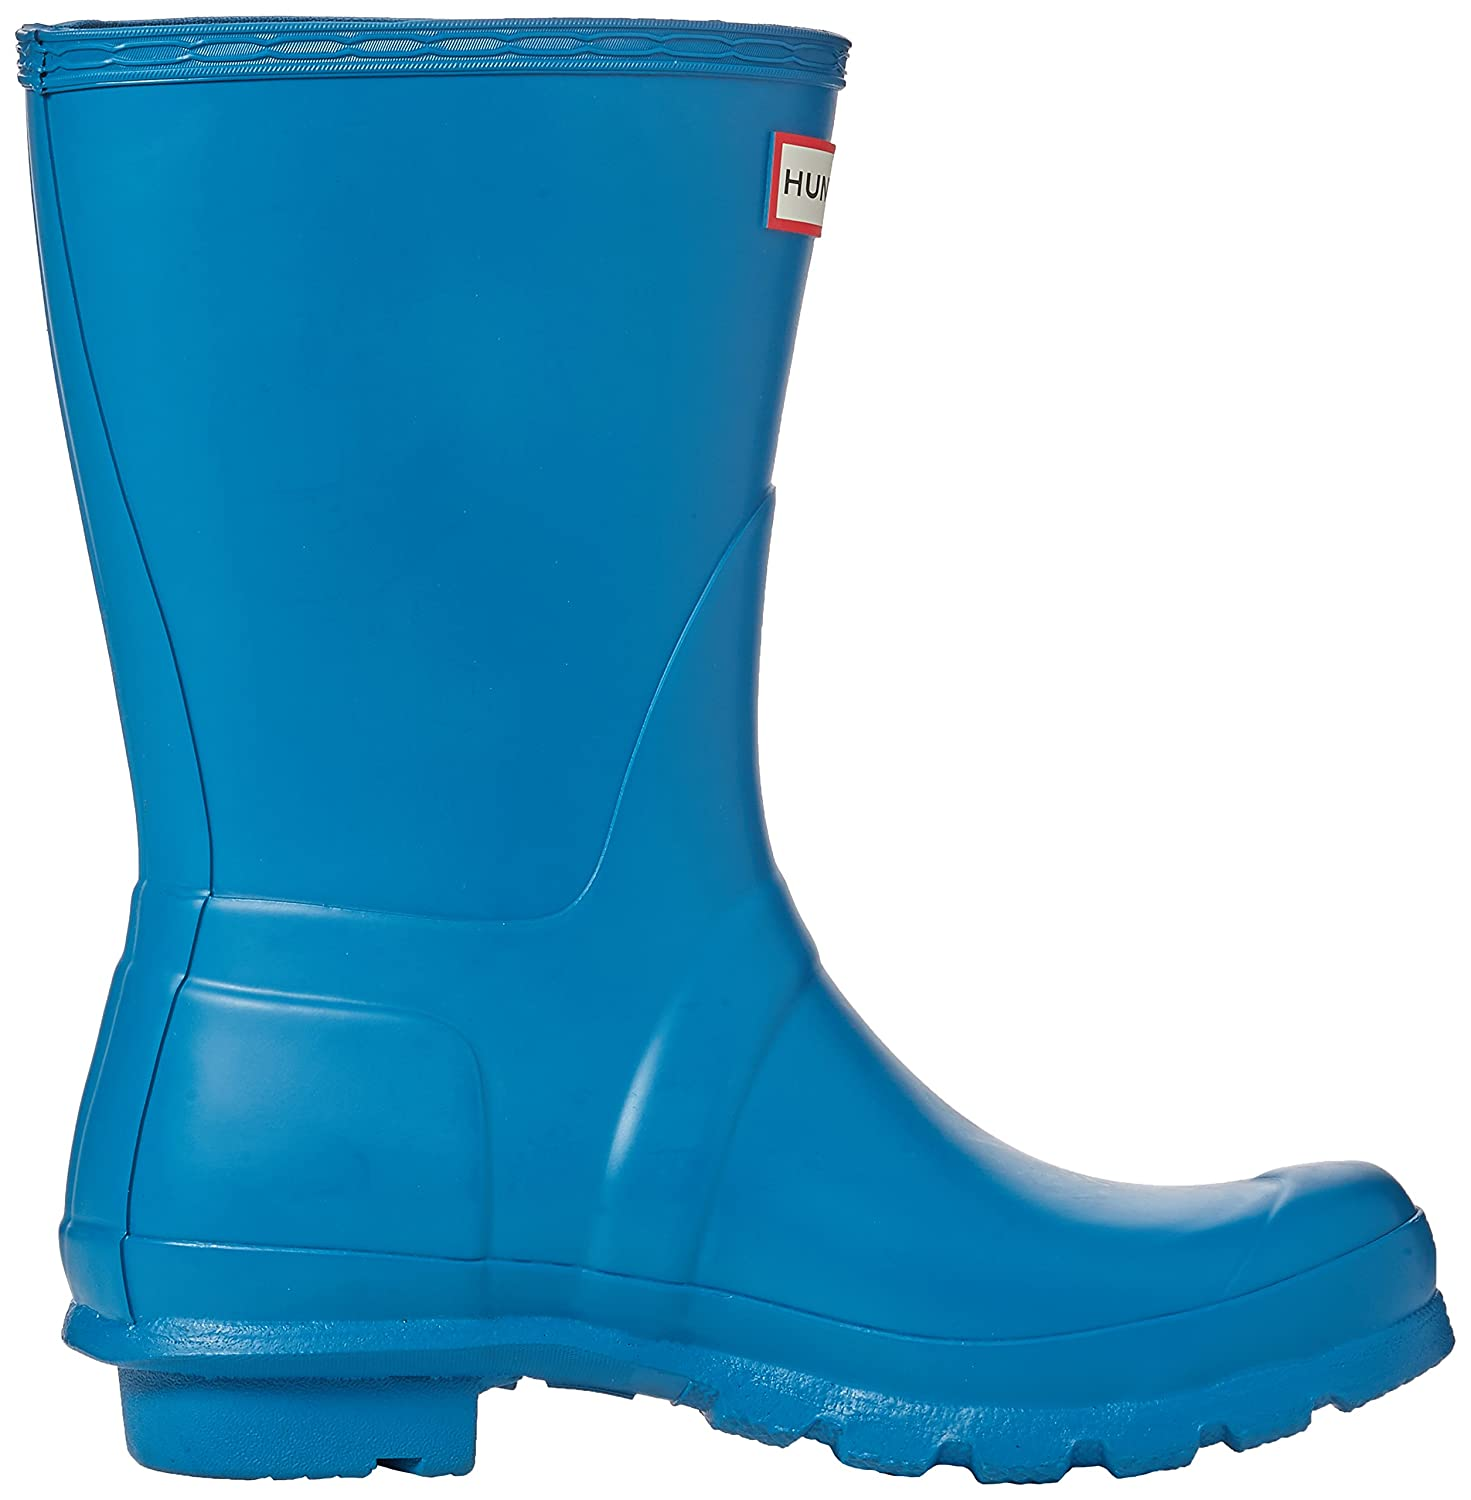 Hunter Women's Original Short US|Ocean Rain Boot B06WLGN51Q 6 B(M) US|Ocean Short Blue 273b55